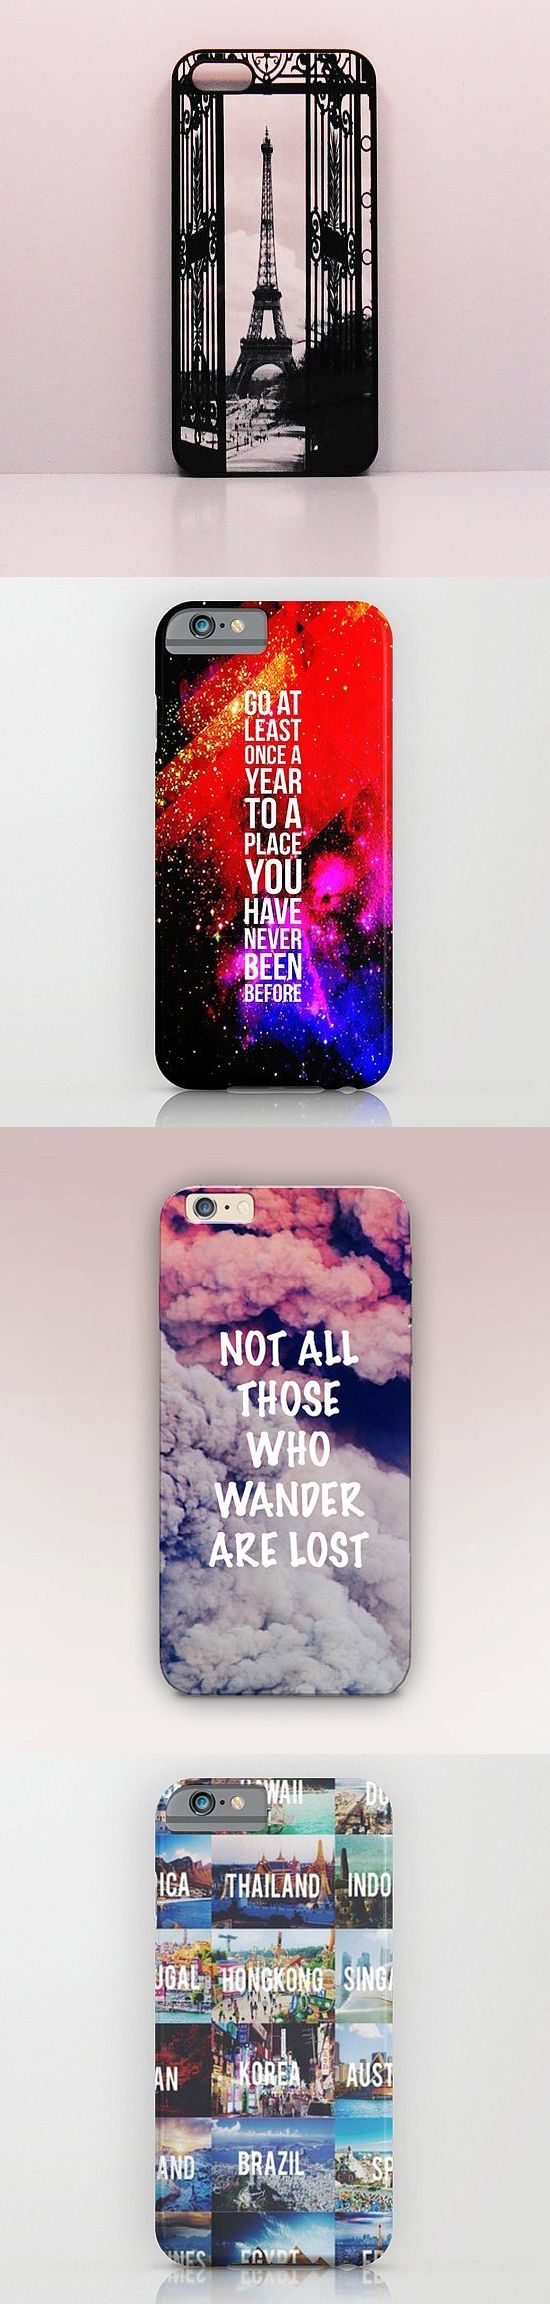 These beautiful phone cases will inspire you to travel